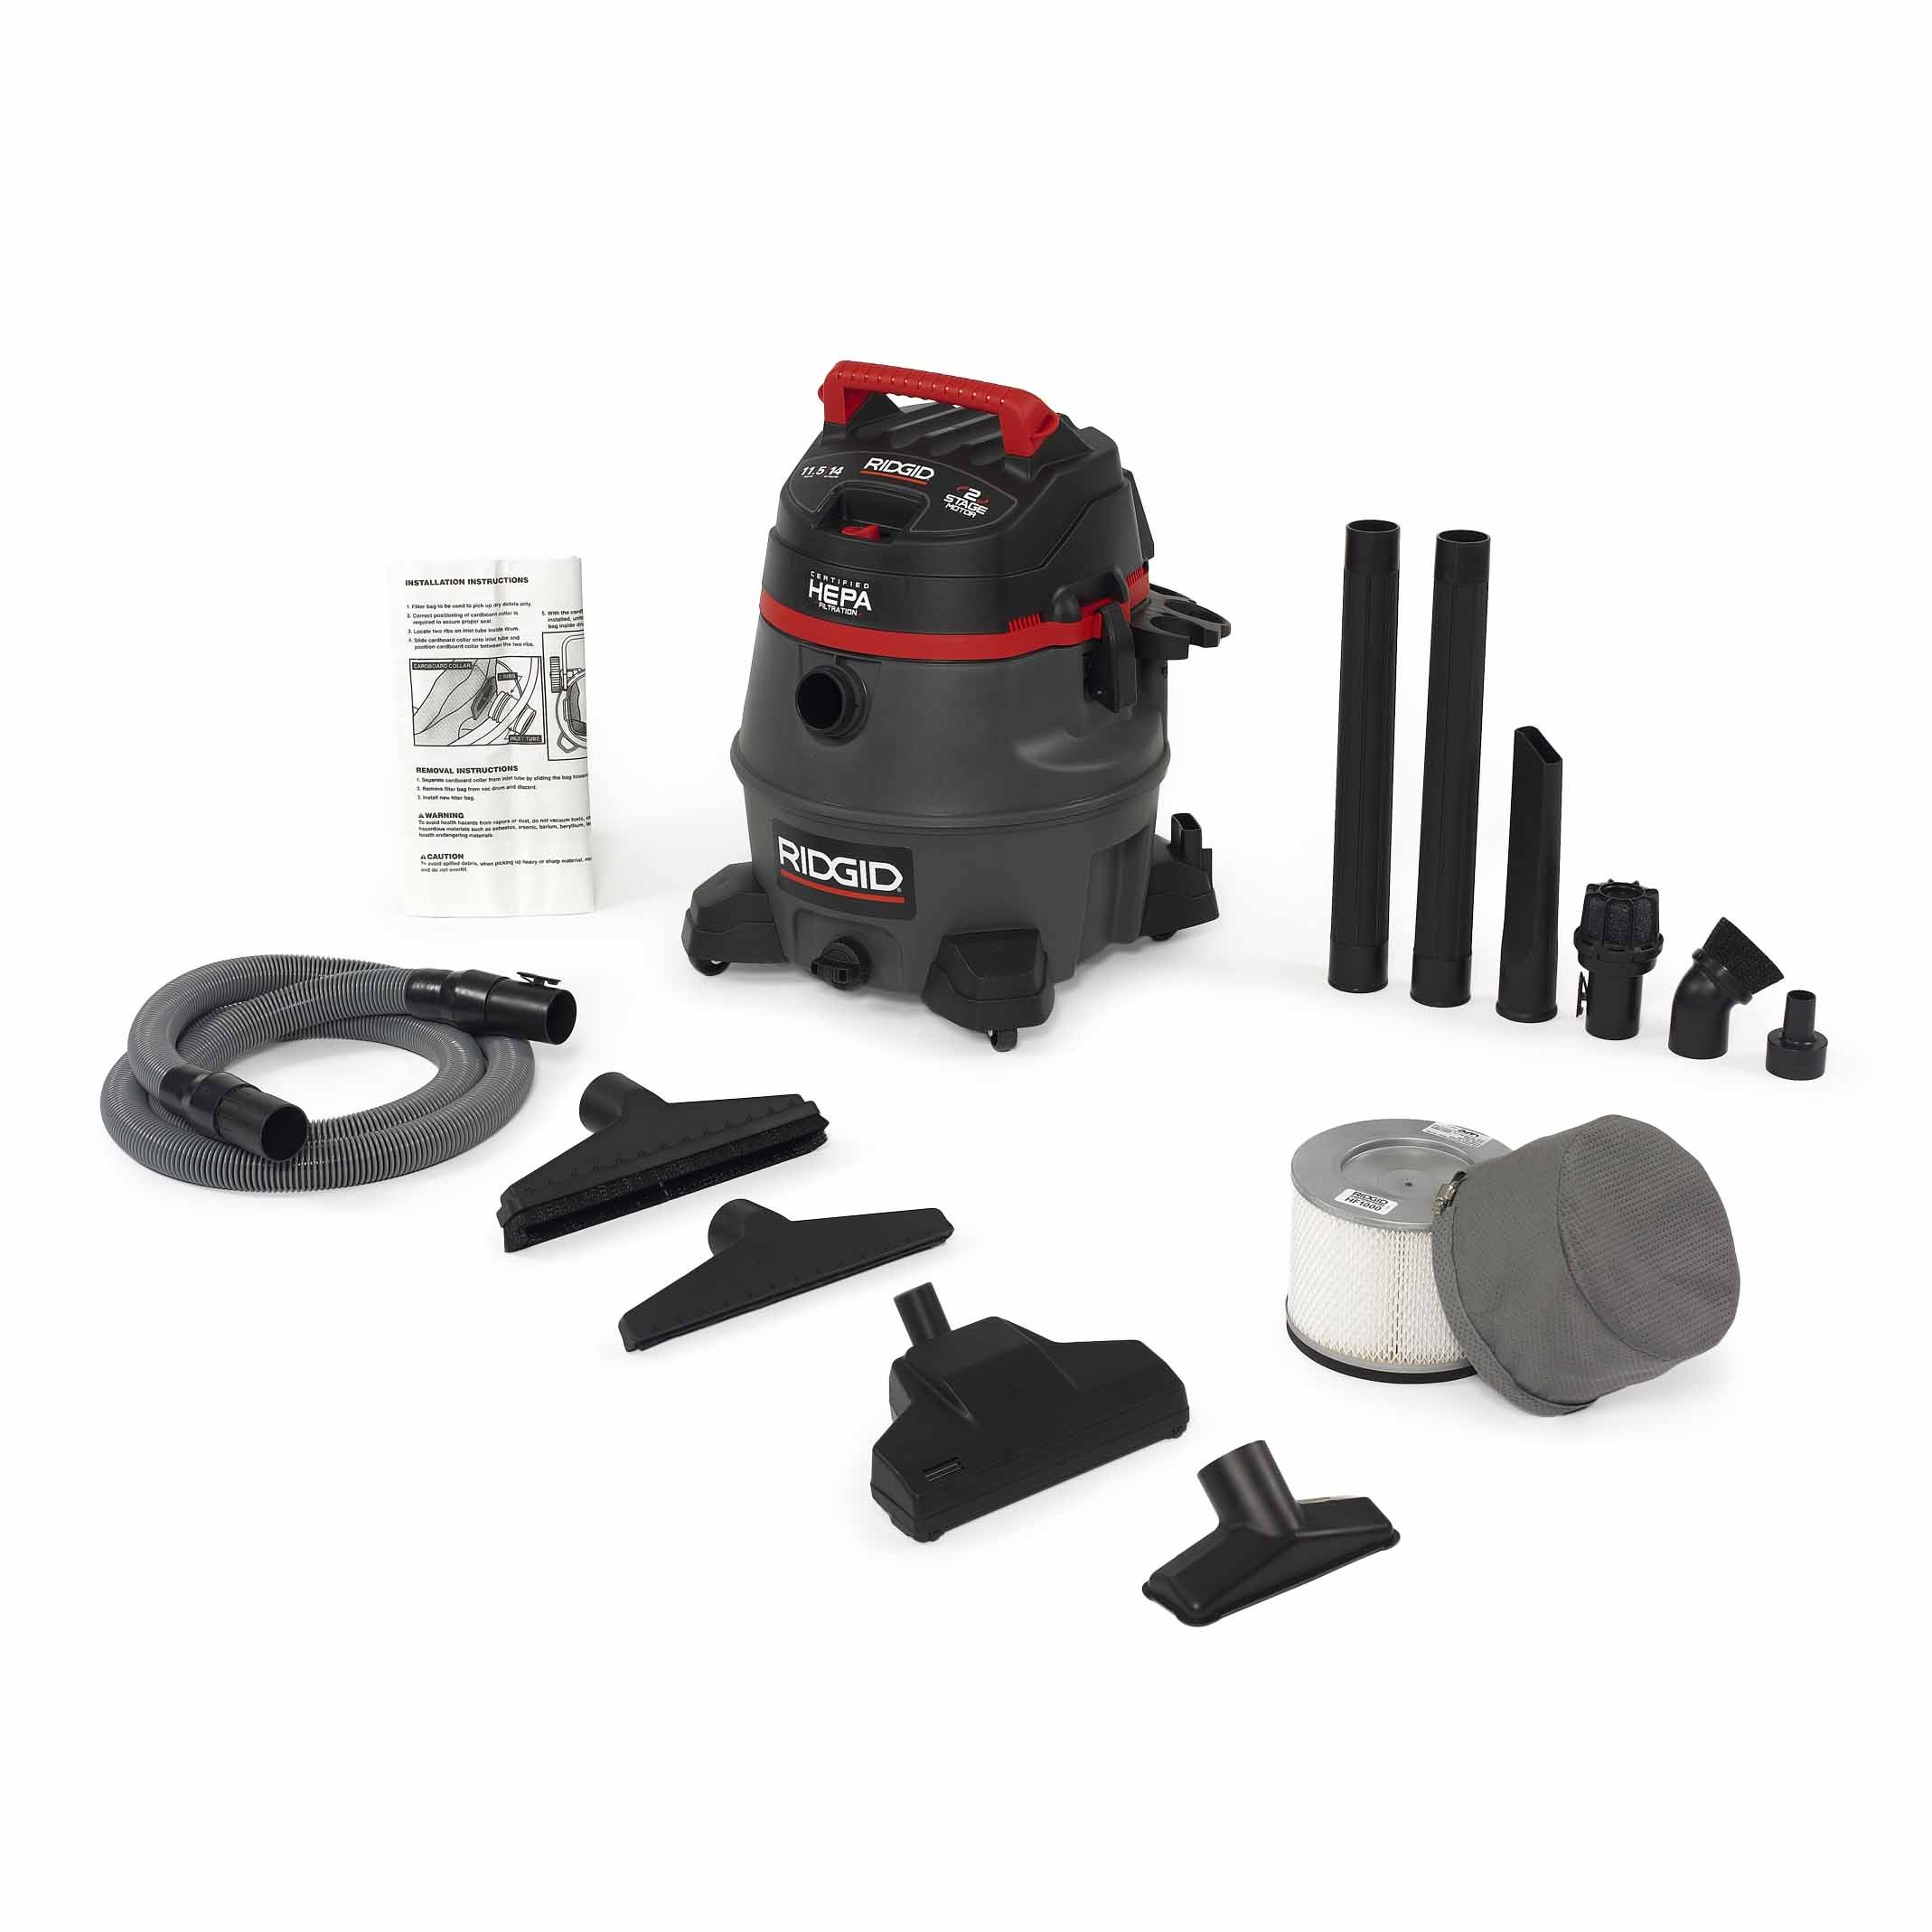 Ridgid 50368 RV2400HF HEPA Wet/Dry Vacuum, 14 gal, Red by Ridgid